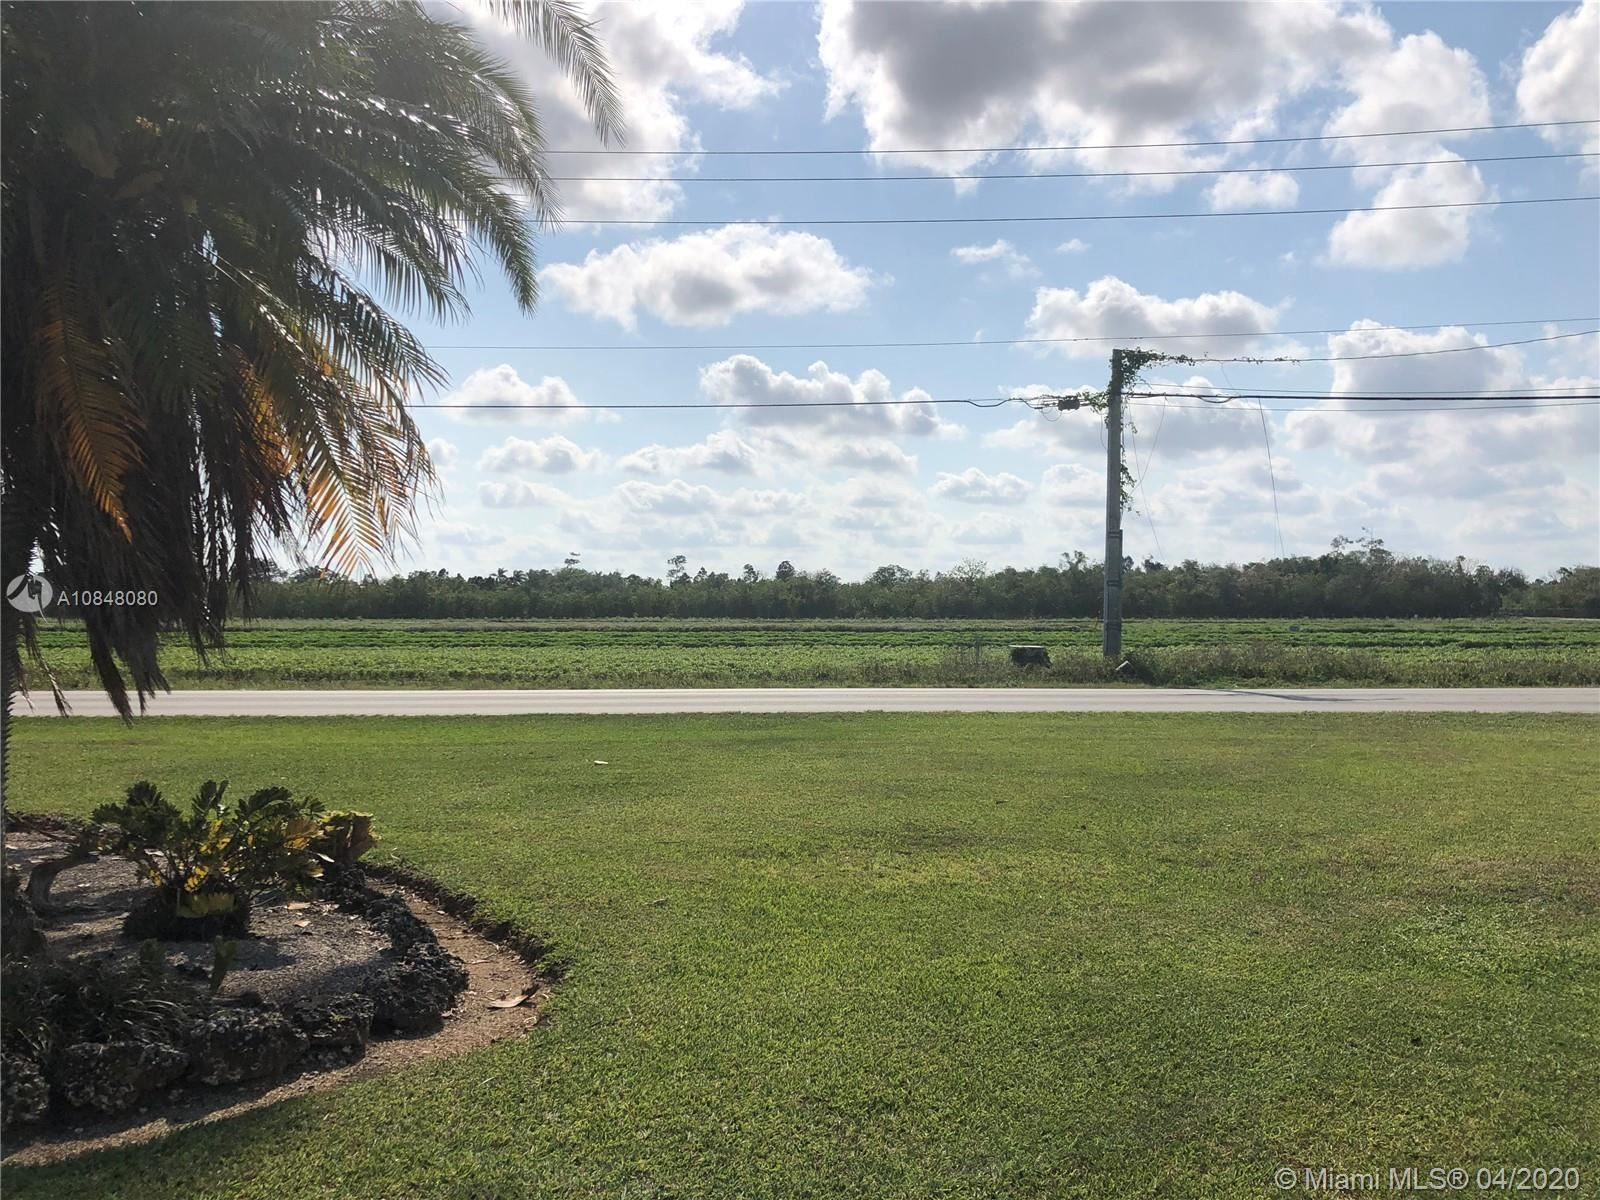 30501 SW 197th Ave, Homestead, FL 33030 - #: A10848080